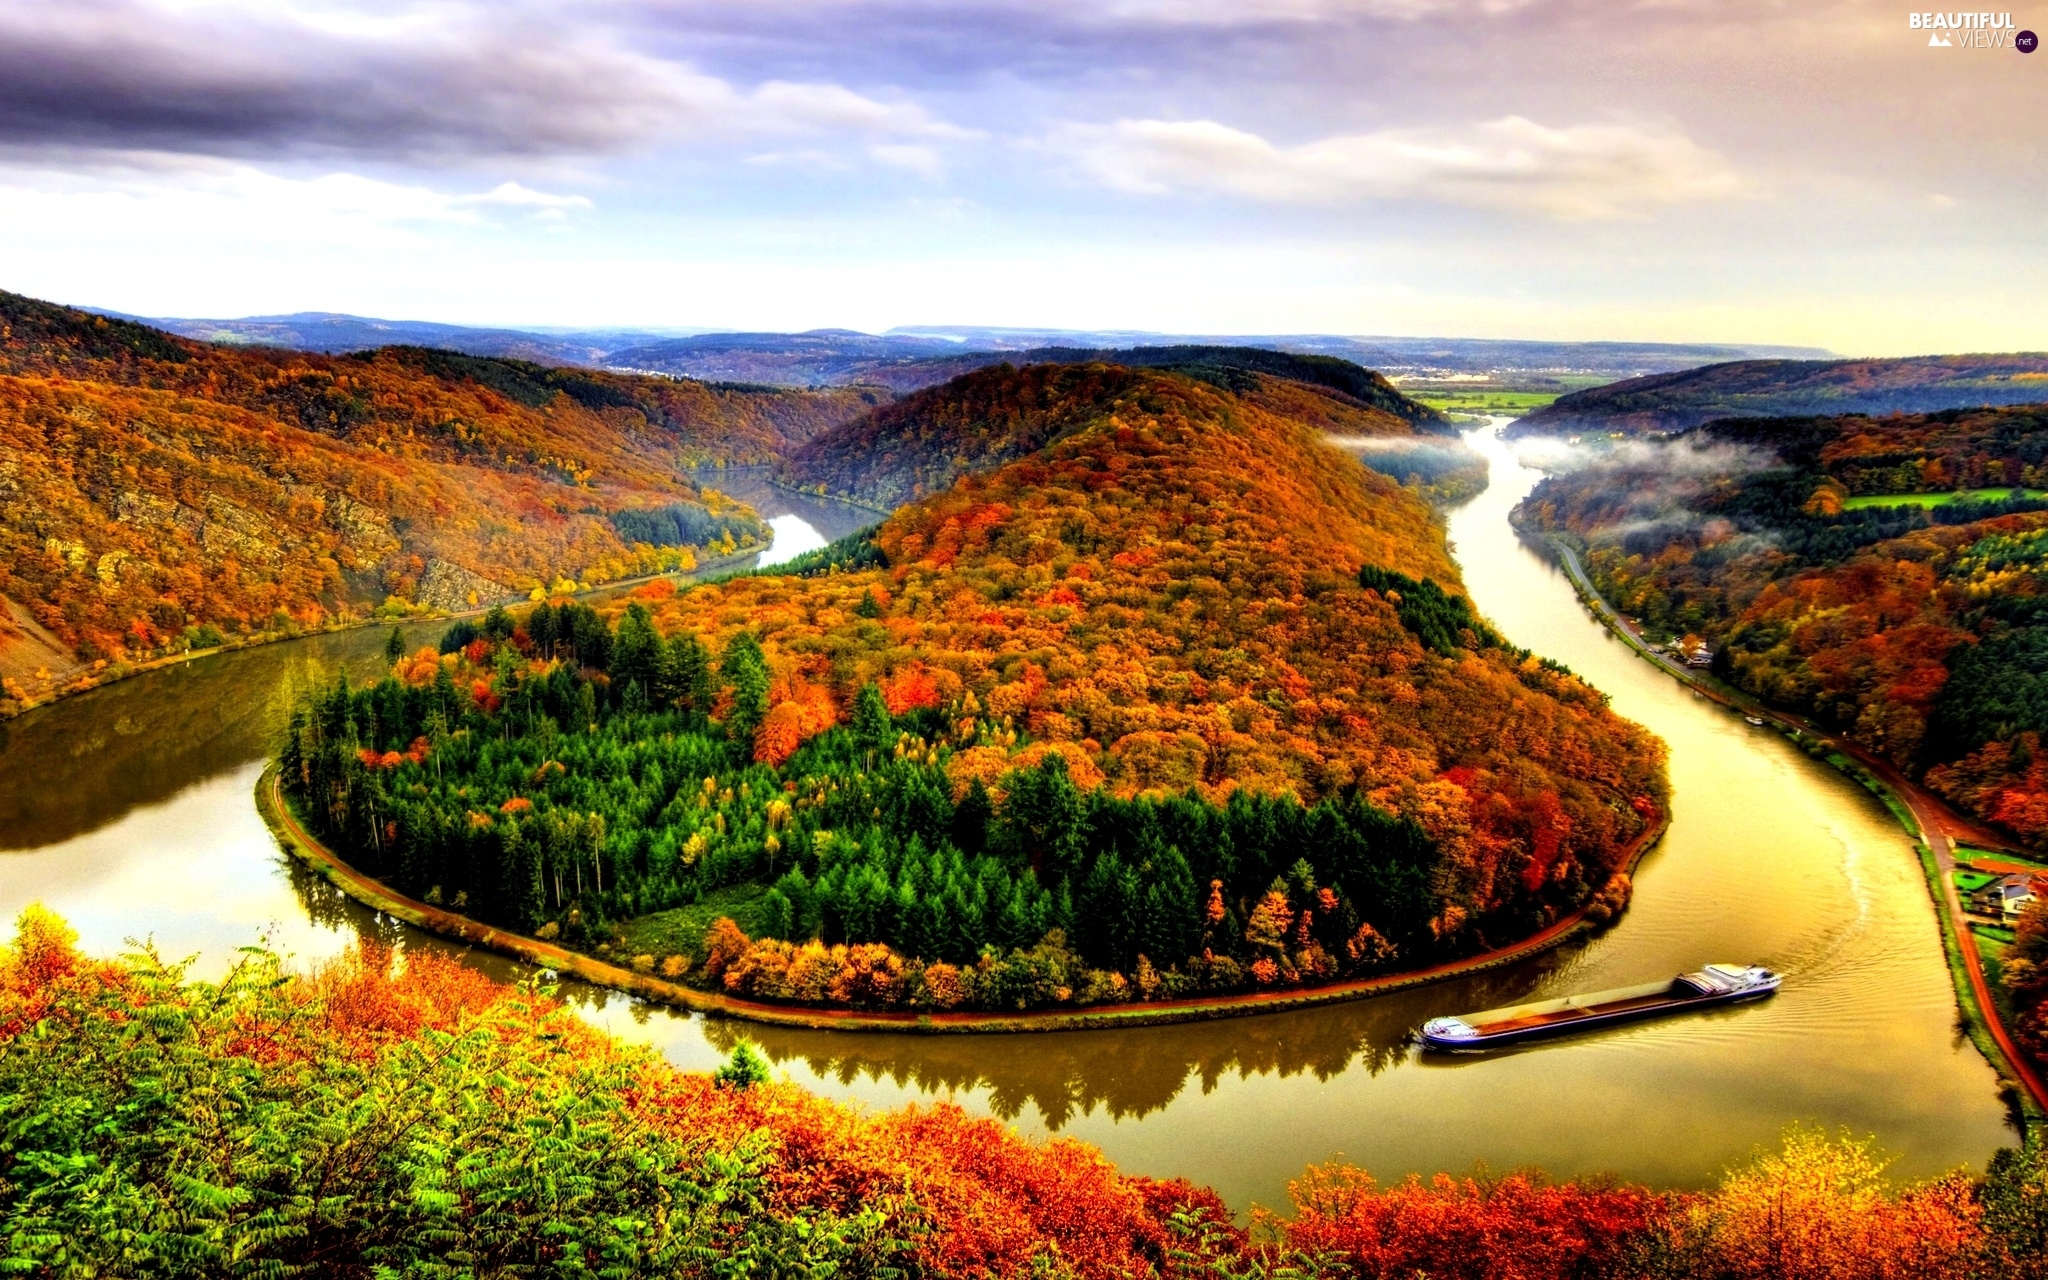 meander, autumn, viewes, River, trees